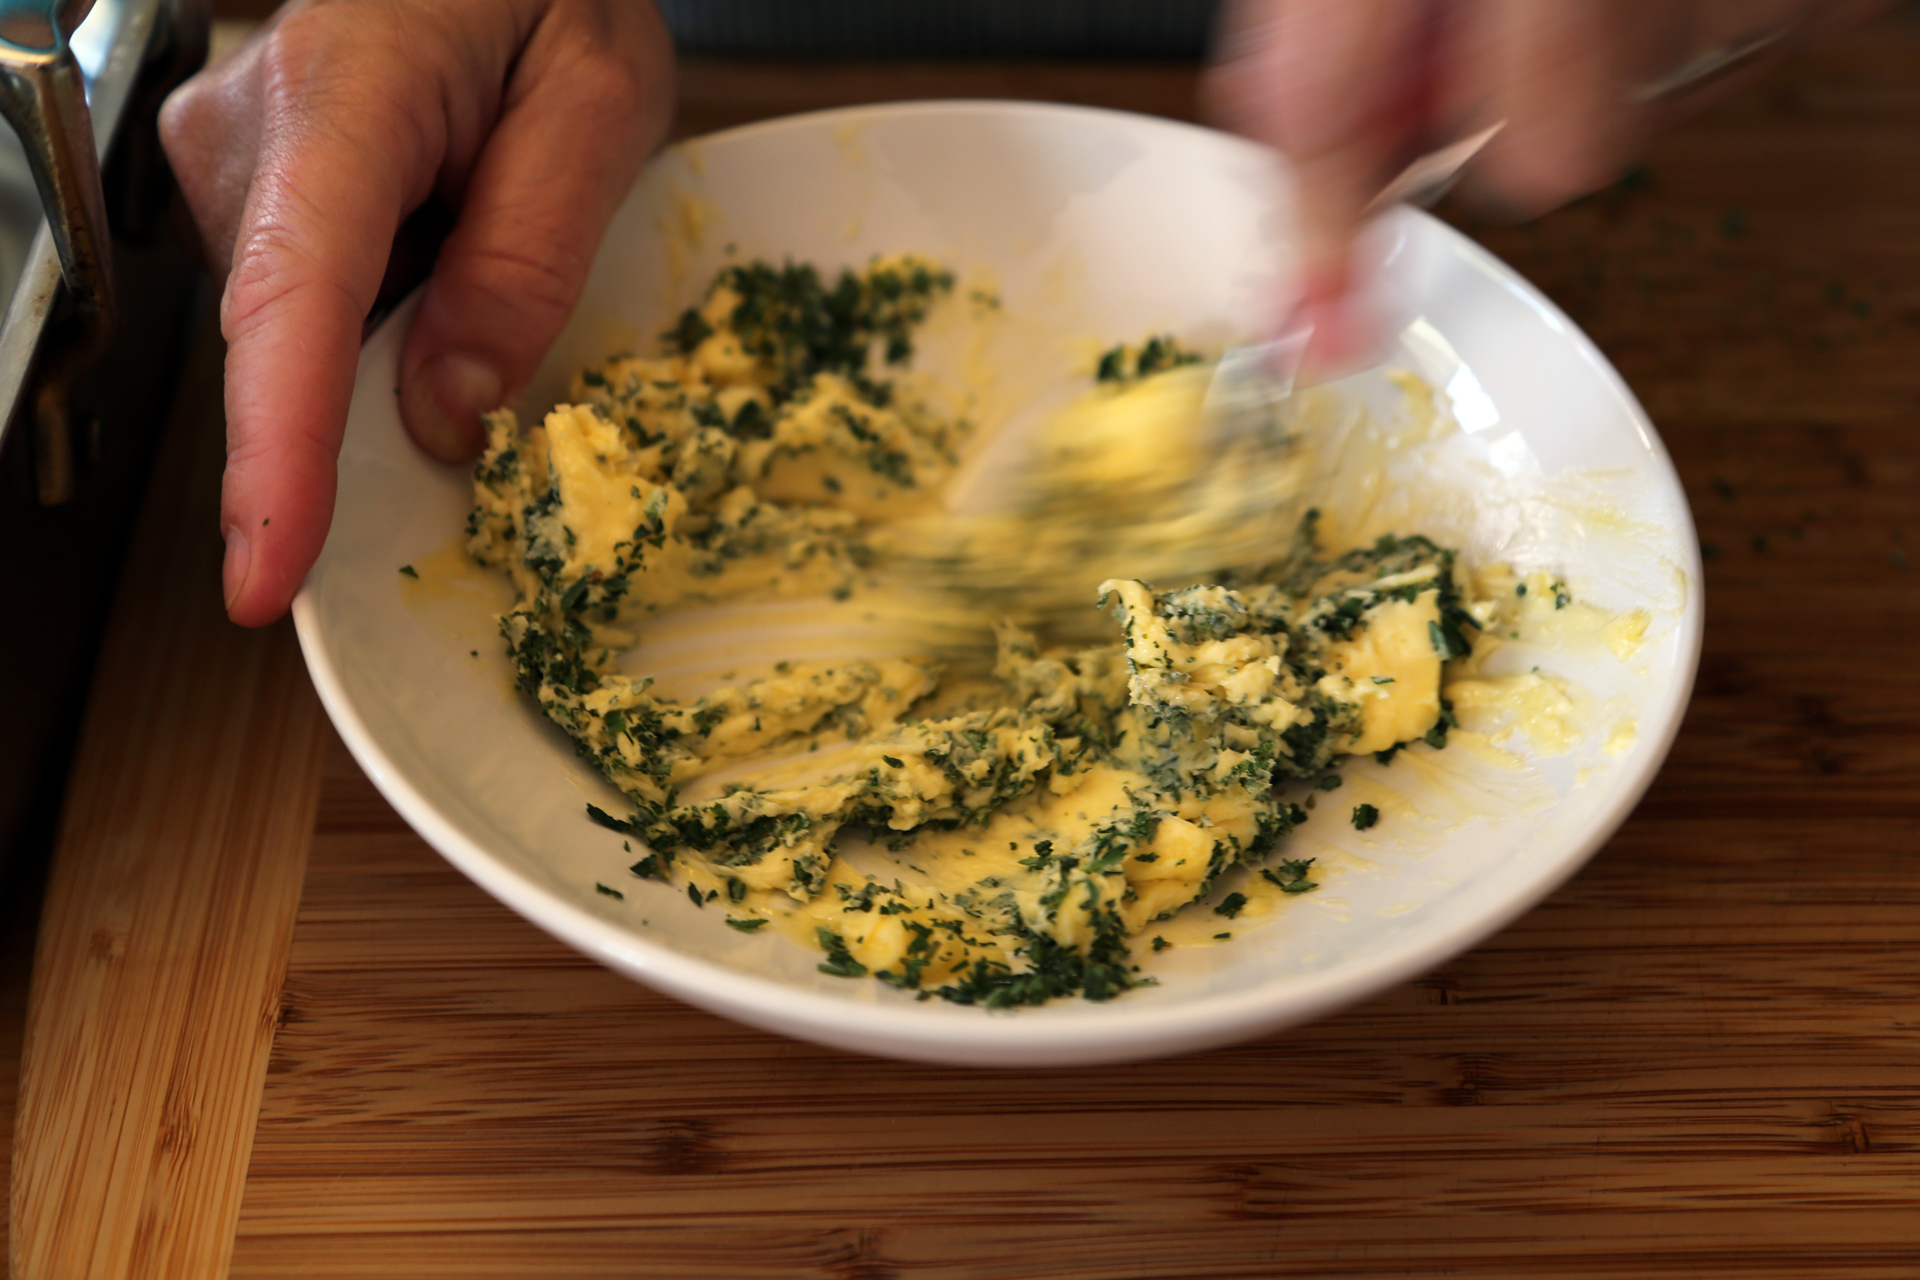 In a bowl, stir together the butter, thyme, and sage until well combined.